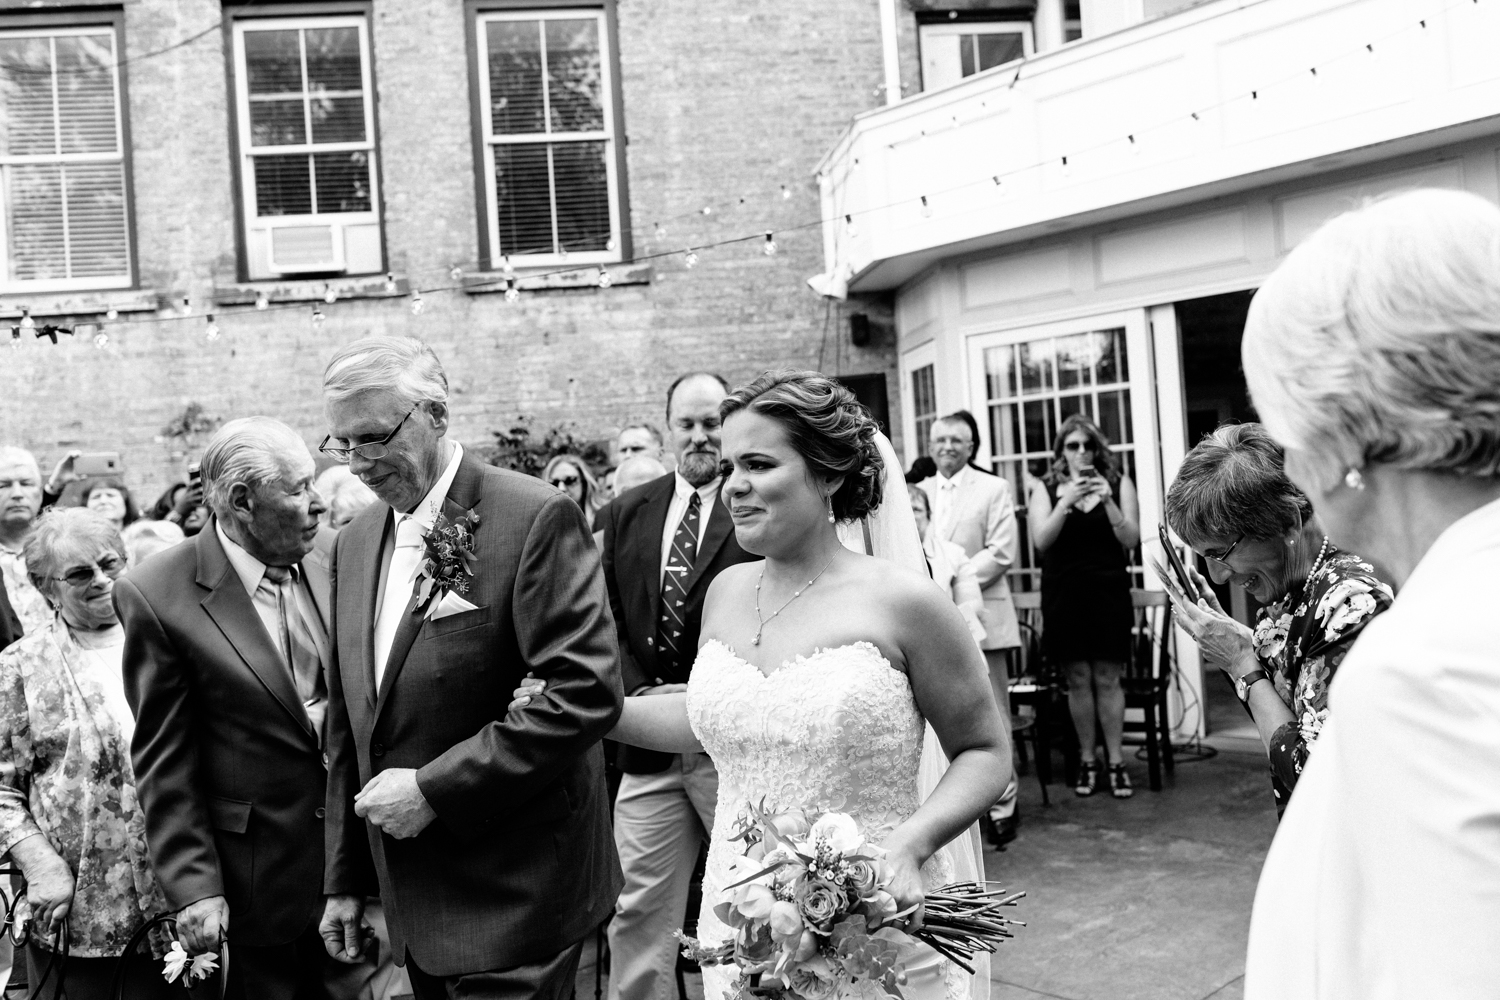 Black and white image of an emotional bride as she walks down the aisle with her father.